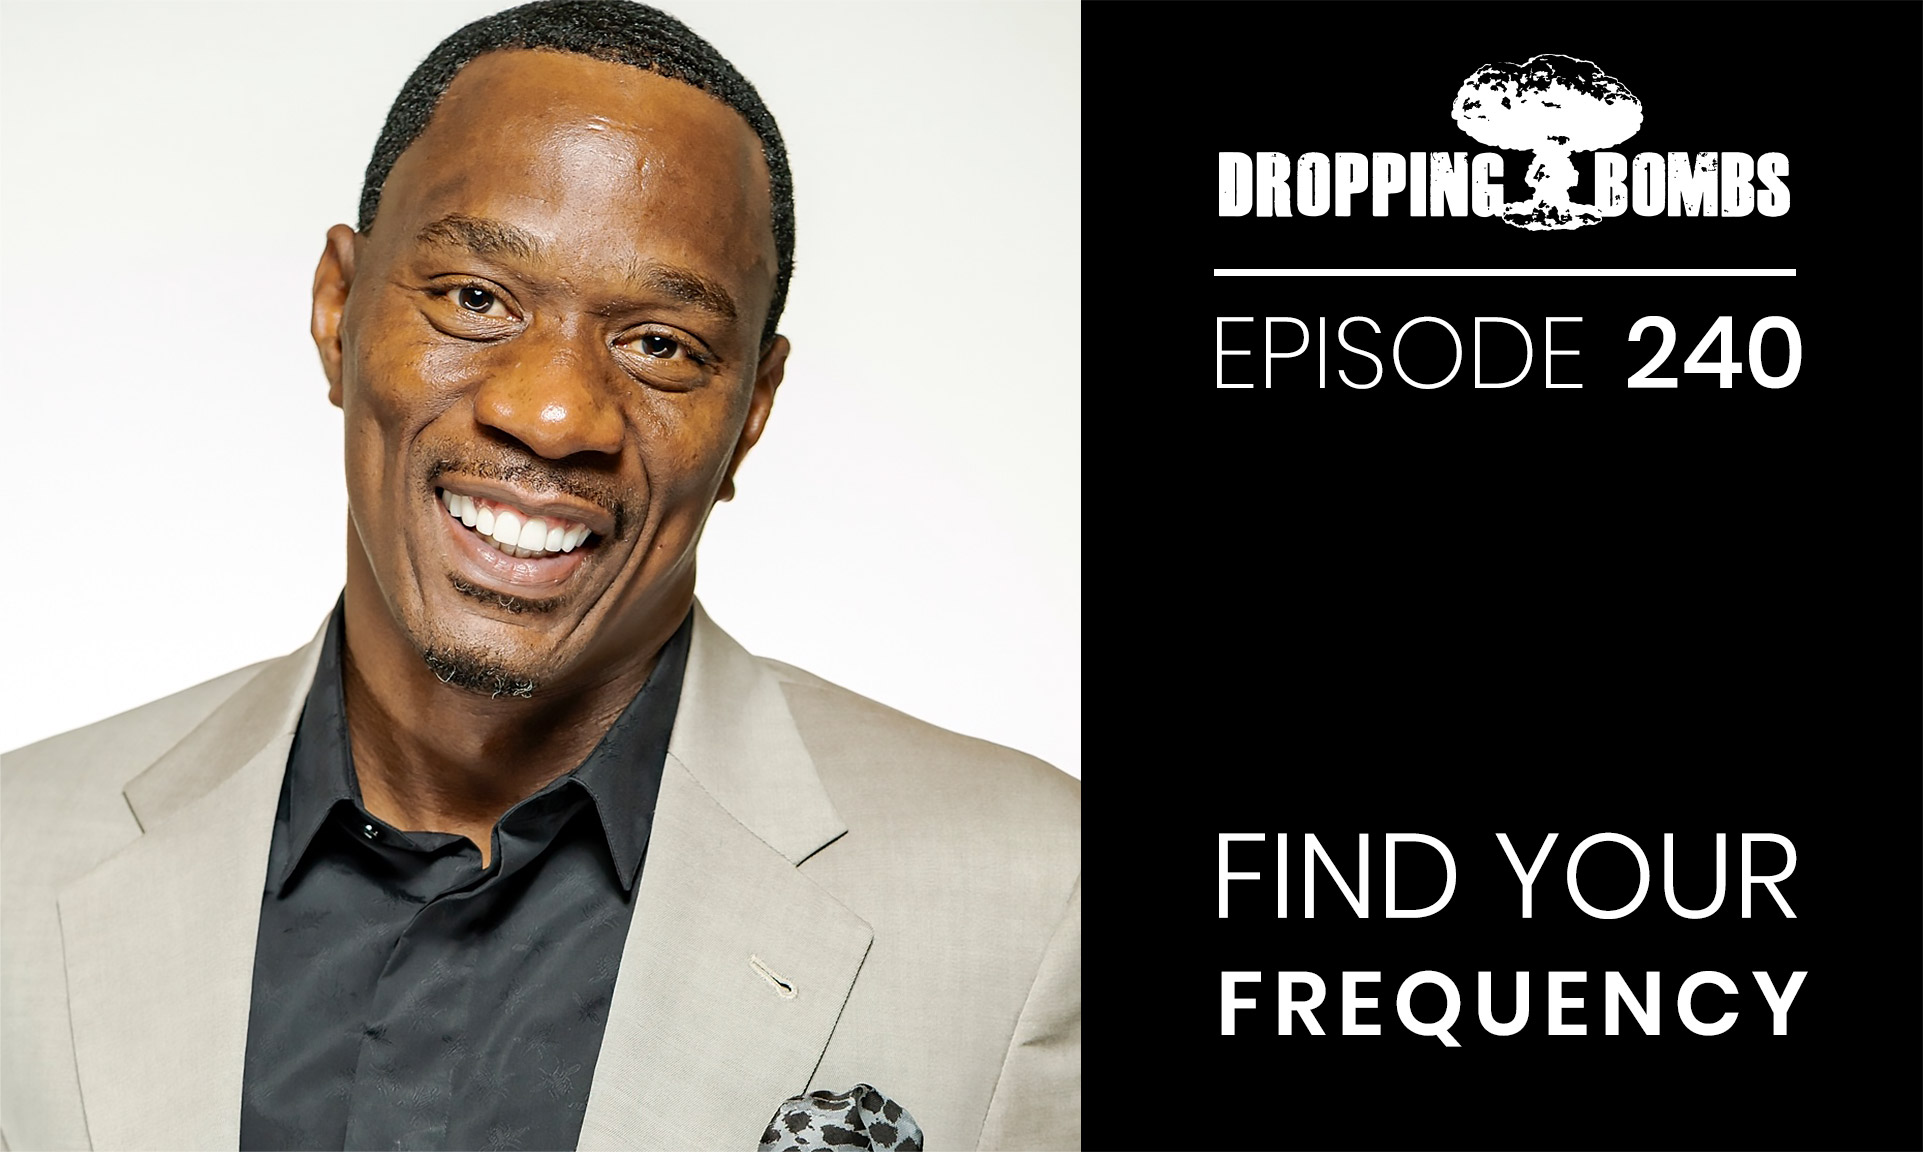 Henry Kellem. Find Your Frequency. Episode 240 with The Real Brad Lea (TRBL)